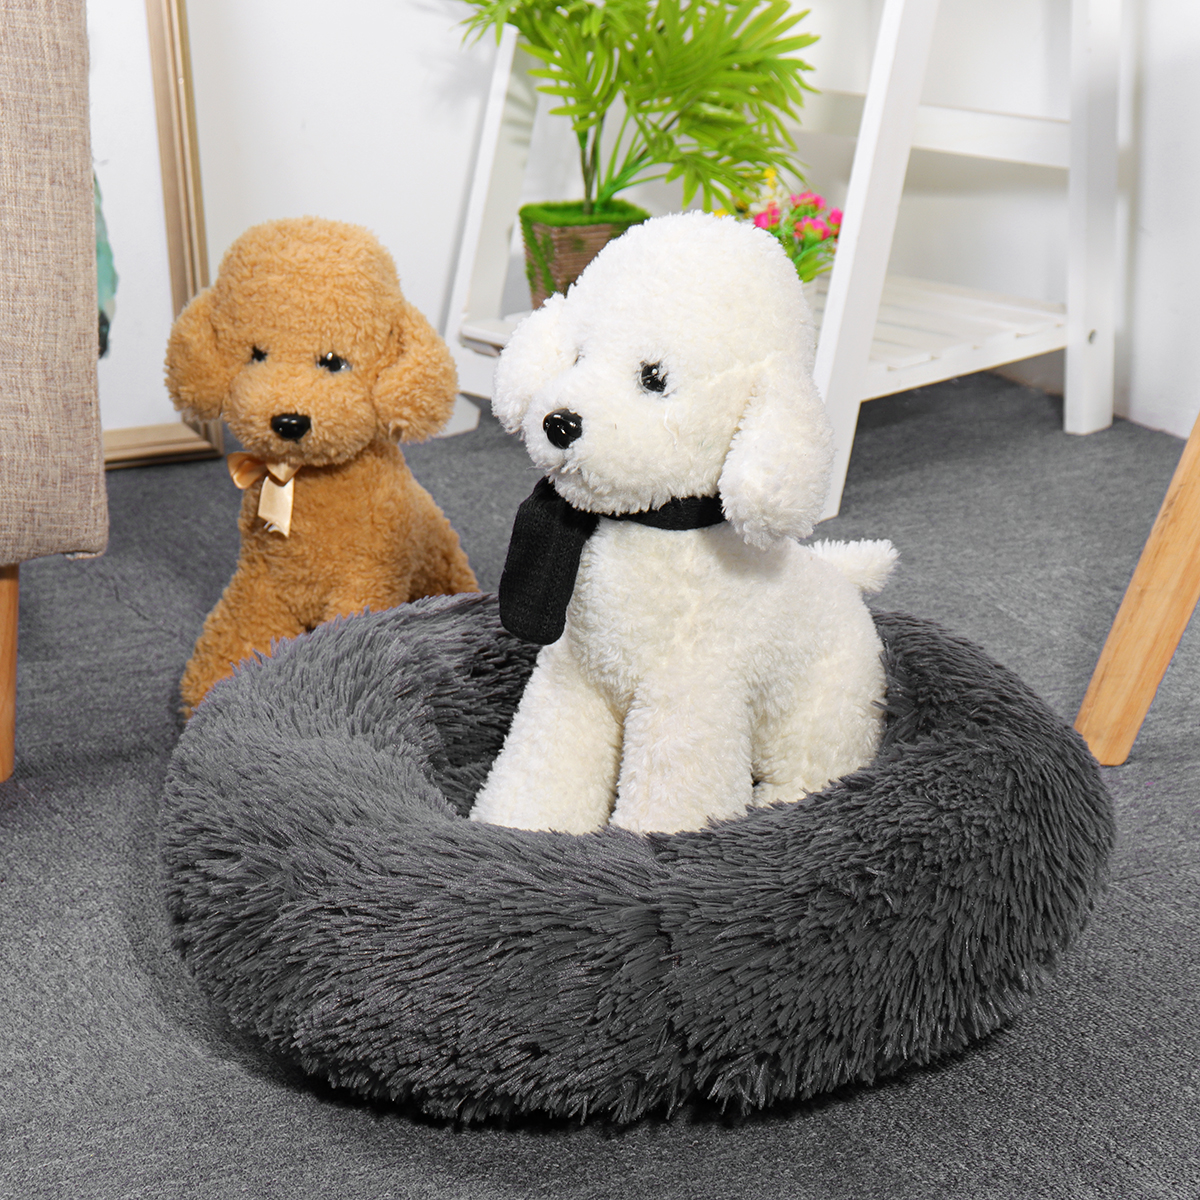 Pet Dog Puppy Bed Orthopedic Long Plush Soft Mattress Sleeping Nest Warming House Pet Cushion Mat for Dogs & Cats and Other Pets Up to 4 kg - Small